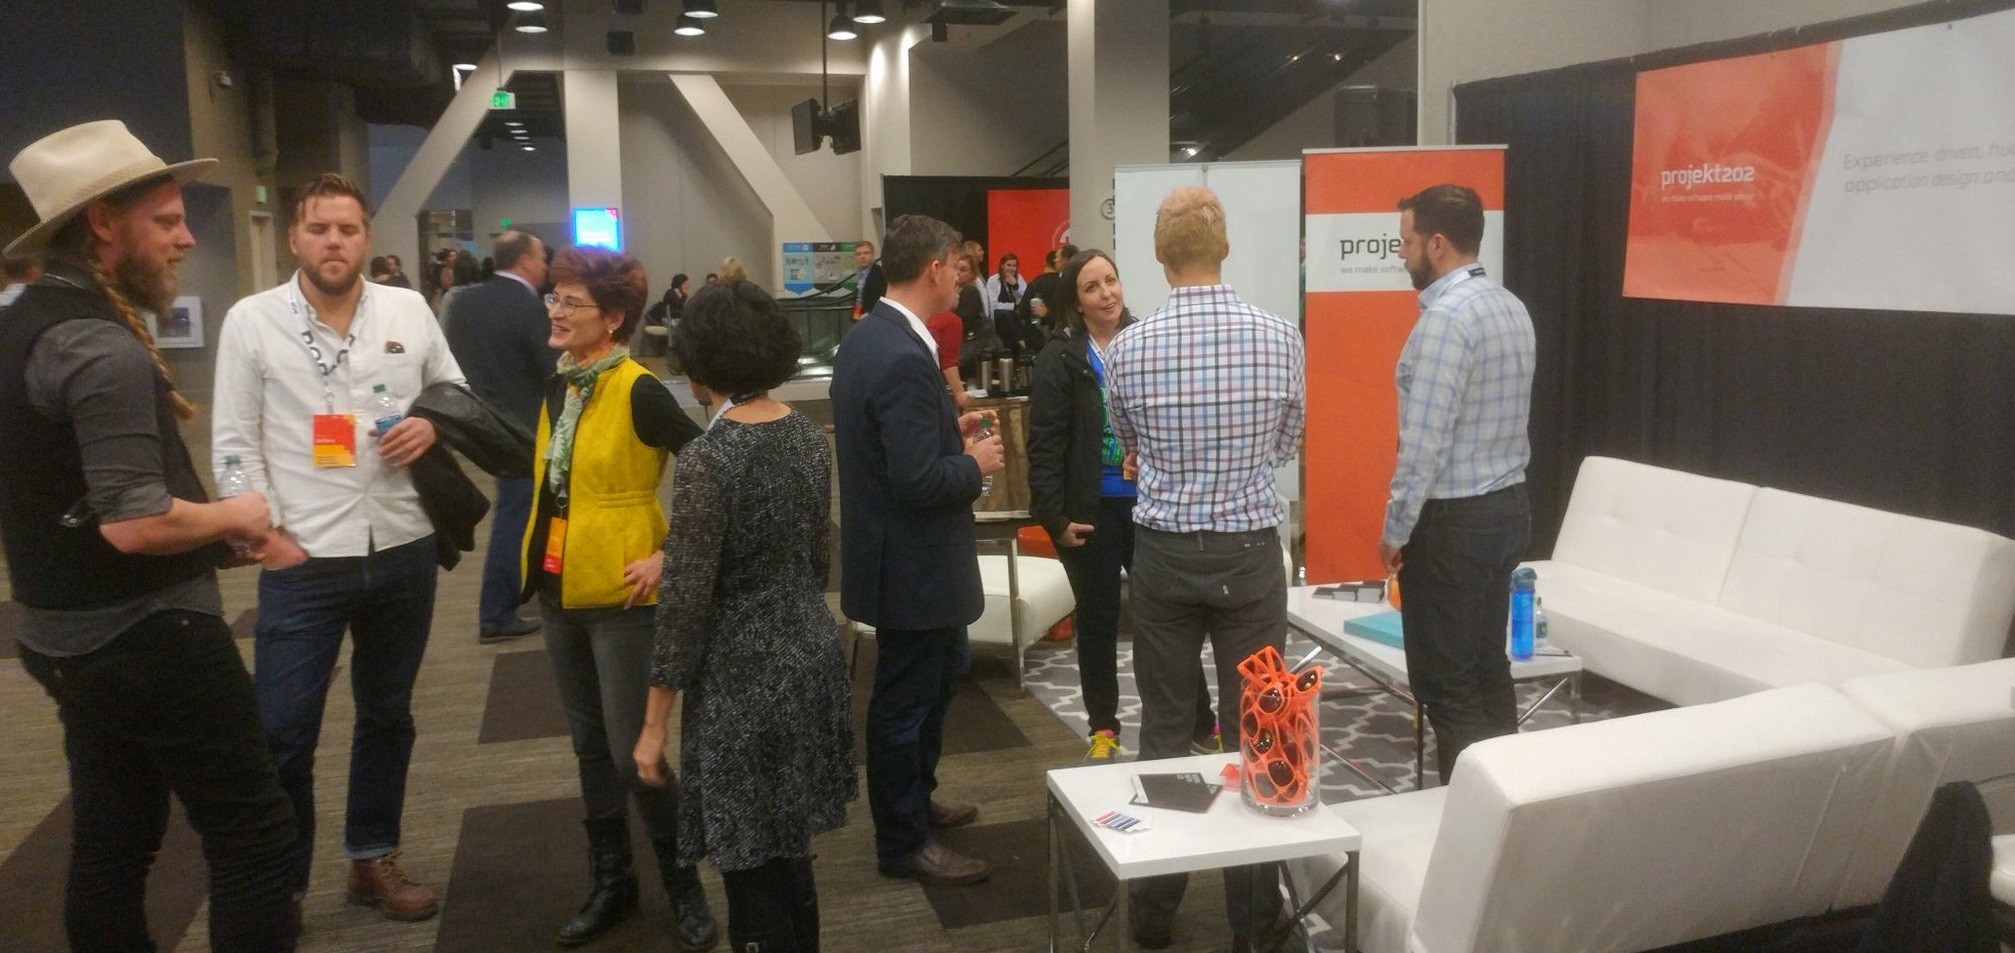 projekt202's business lounge was the place to be at Seattle Interactive.